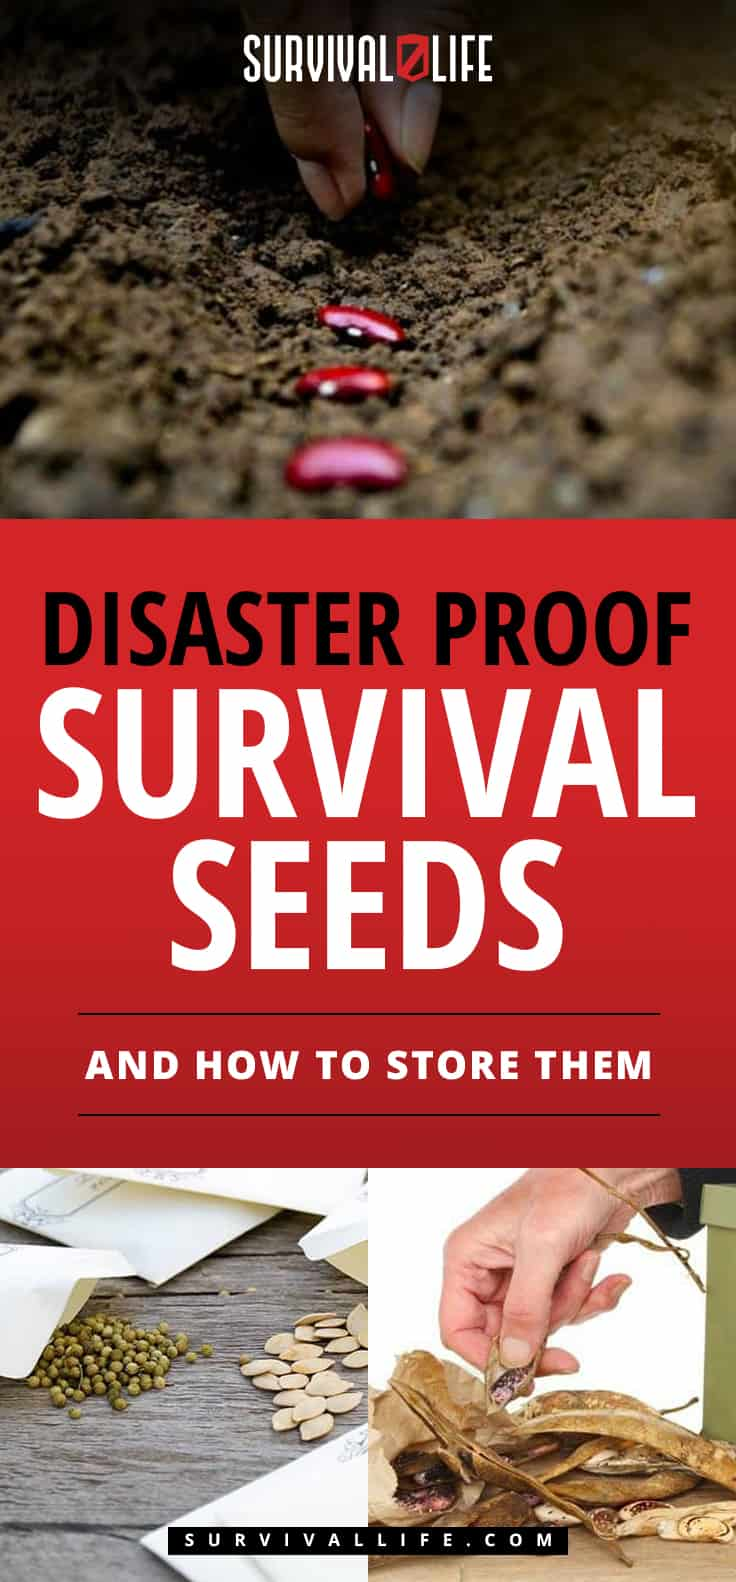 Survival Seeds | Disaster Proof Survival Seeds And How To Store Them